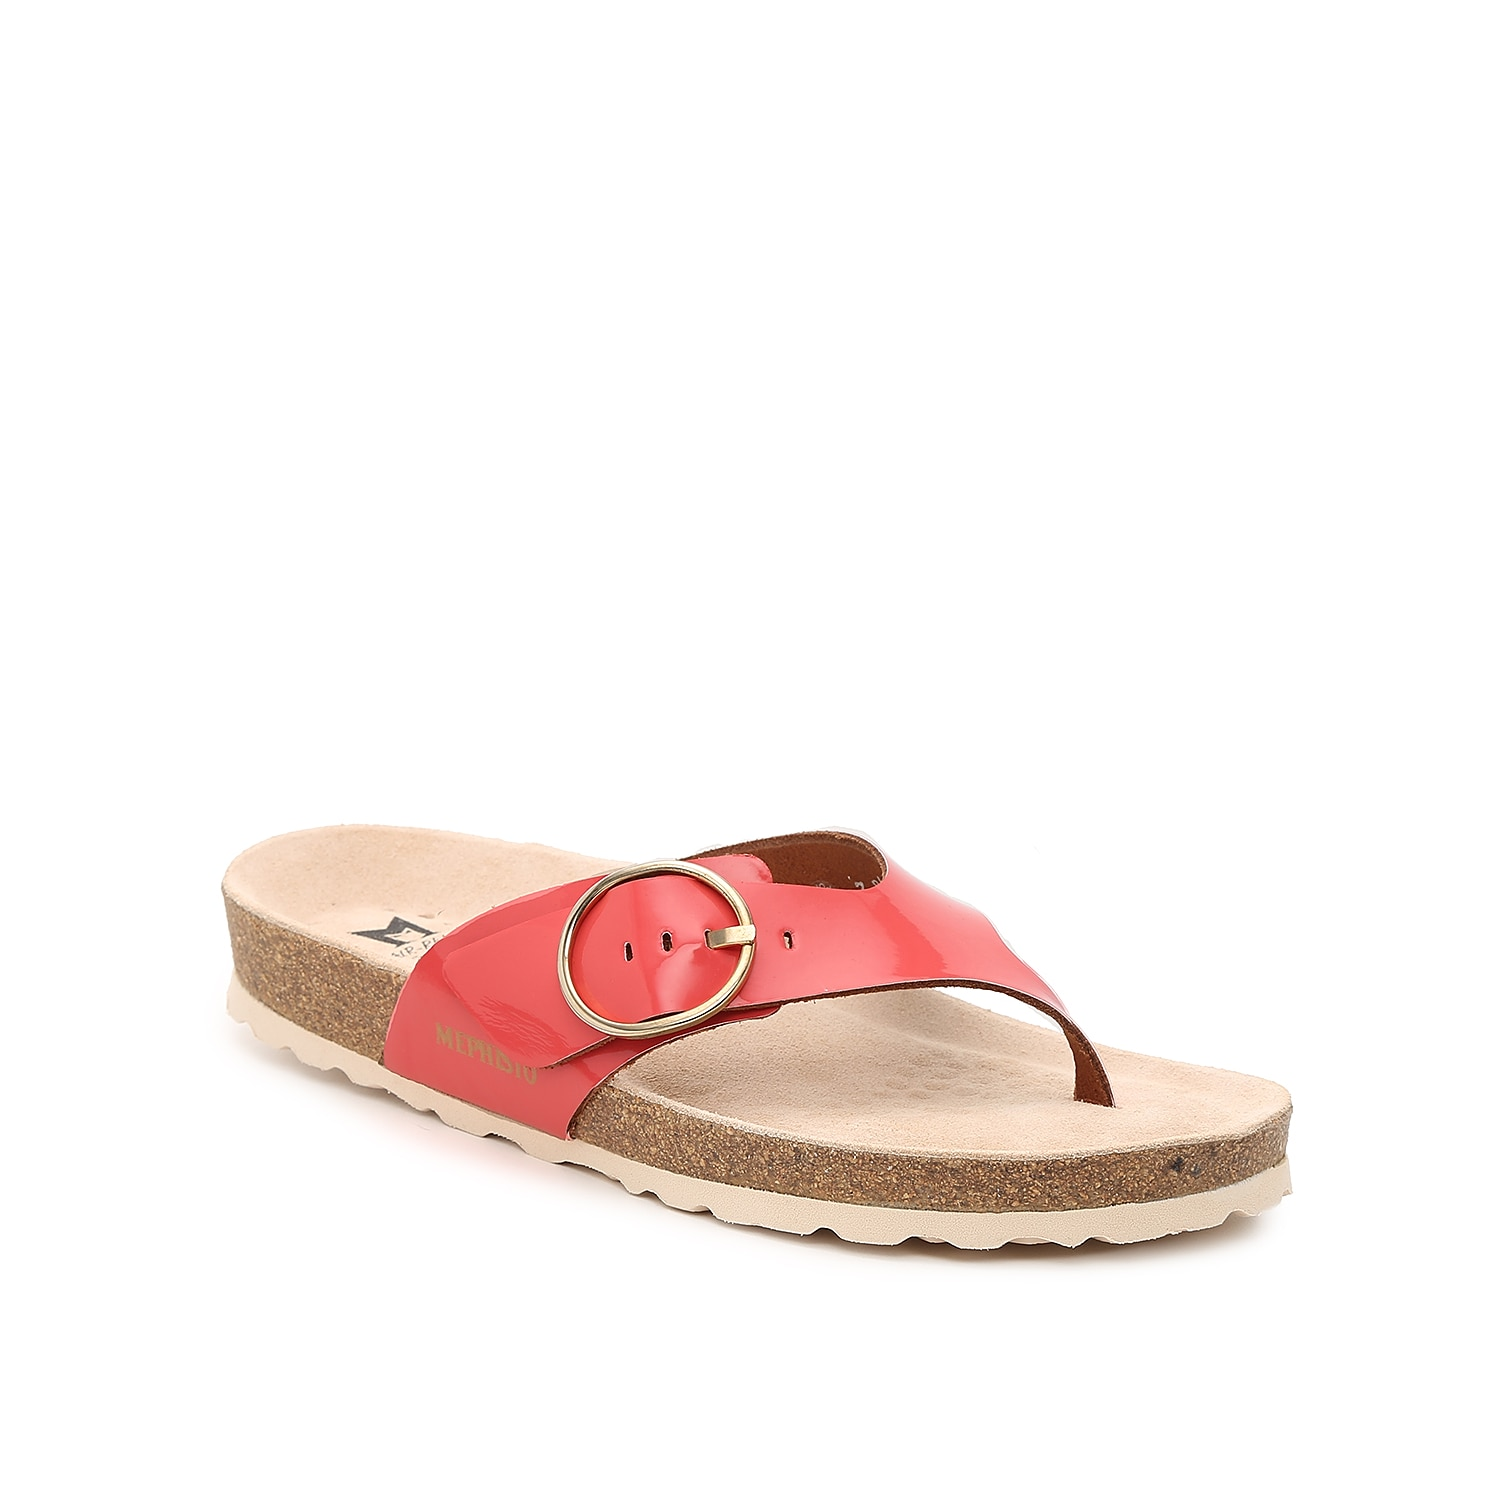 Give your casual shoe collection an update with the Natalina sandal from Mephisto. This slip-on pair is fashioned with a buckle accent and a soft-air technology that provides effective shock absorption!